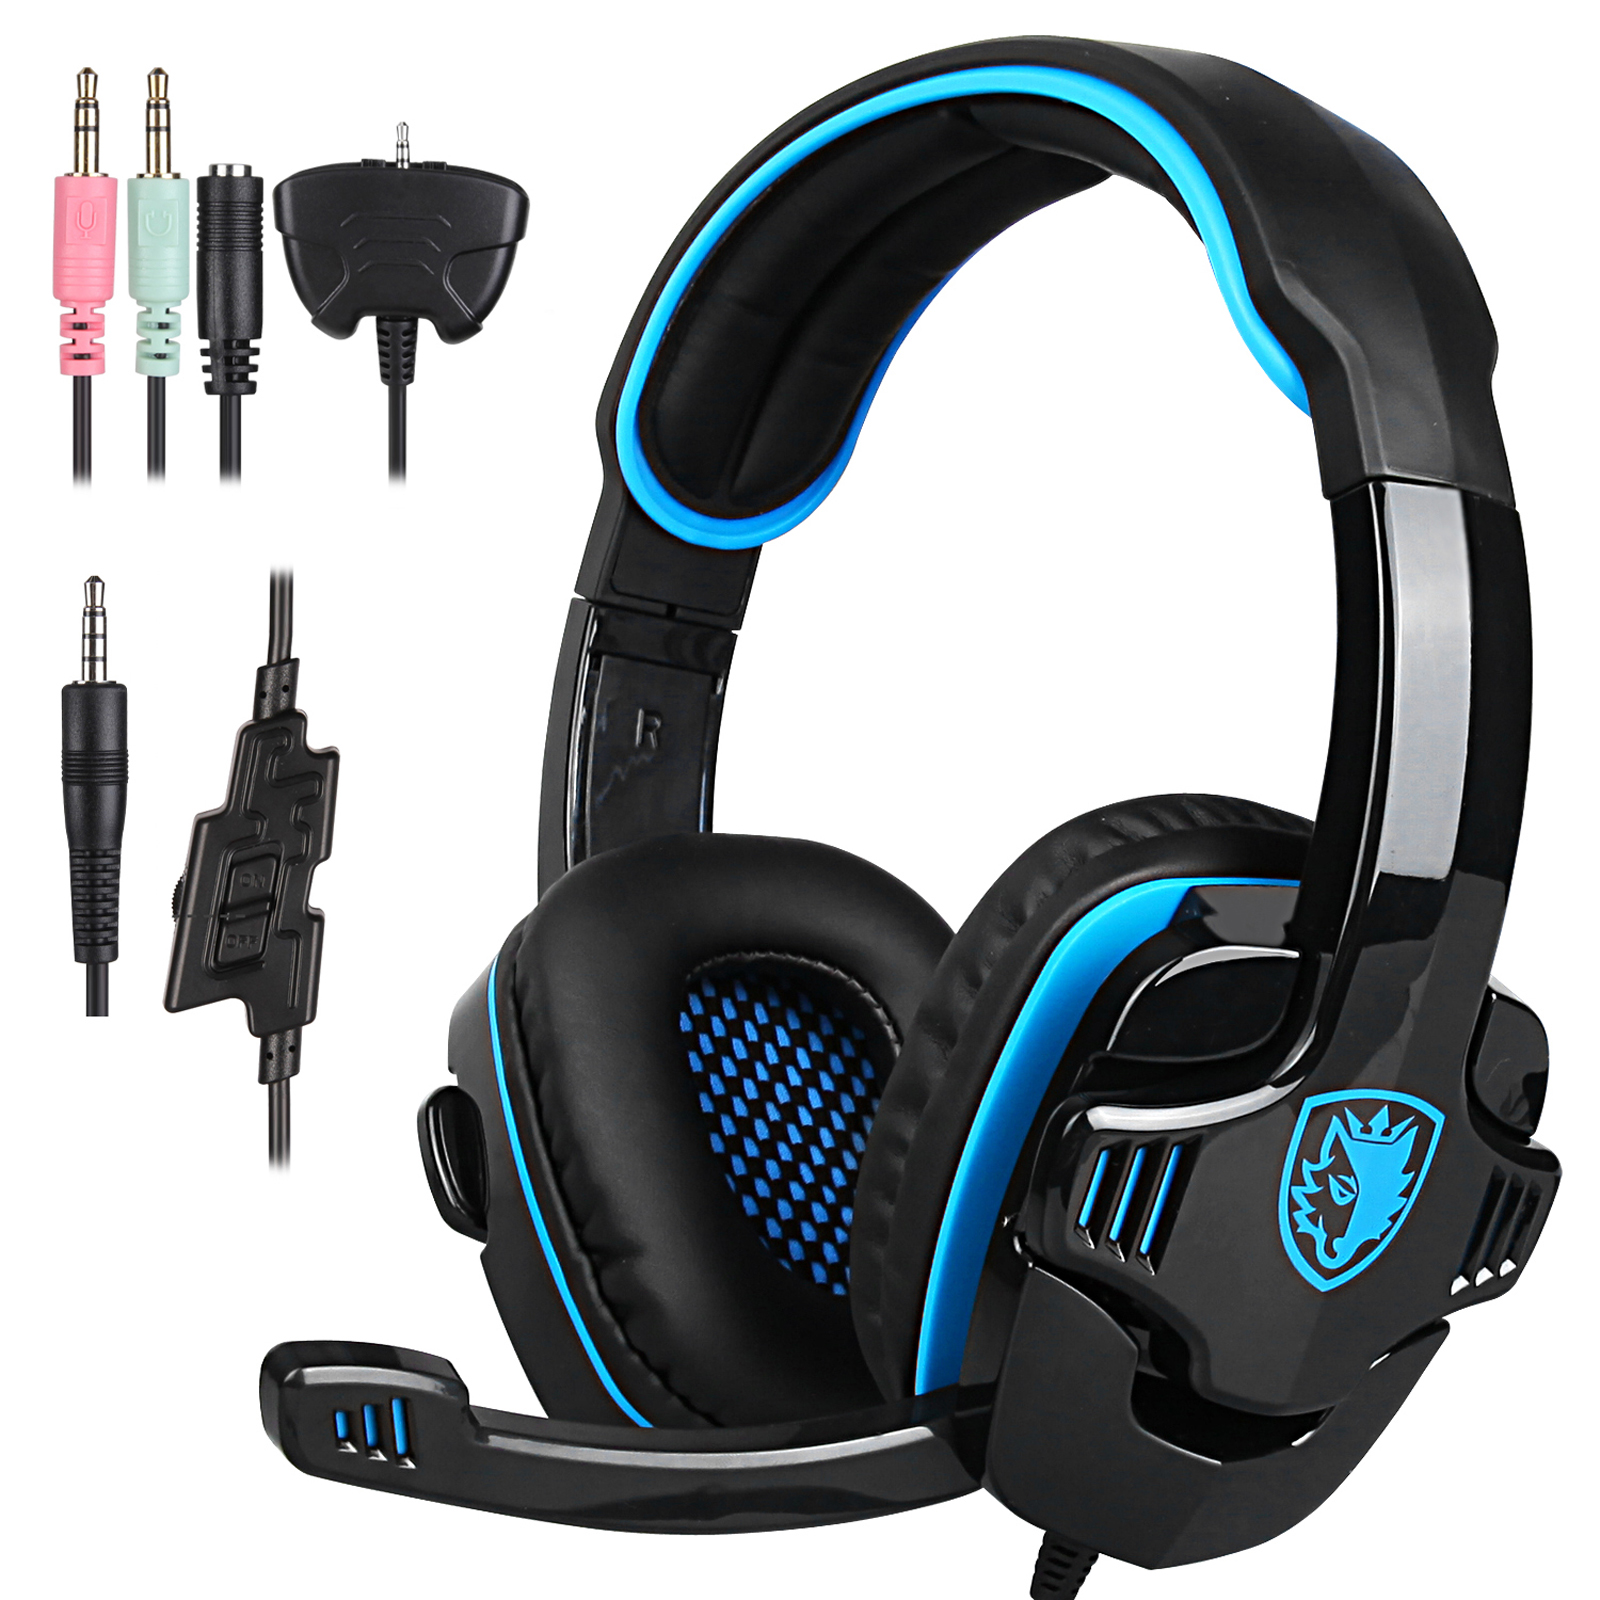 Cheerwing SADES SA-708 GT Stereo HiFi Gaming Headset Headphone with Microphone for PS4/Xbox360/Xbox One New Verison/PC Mac SmartPhone